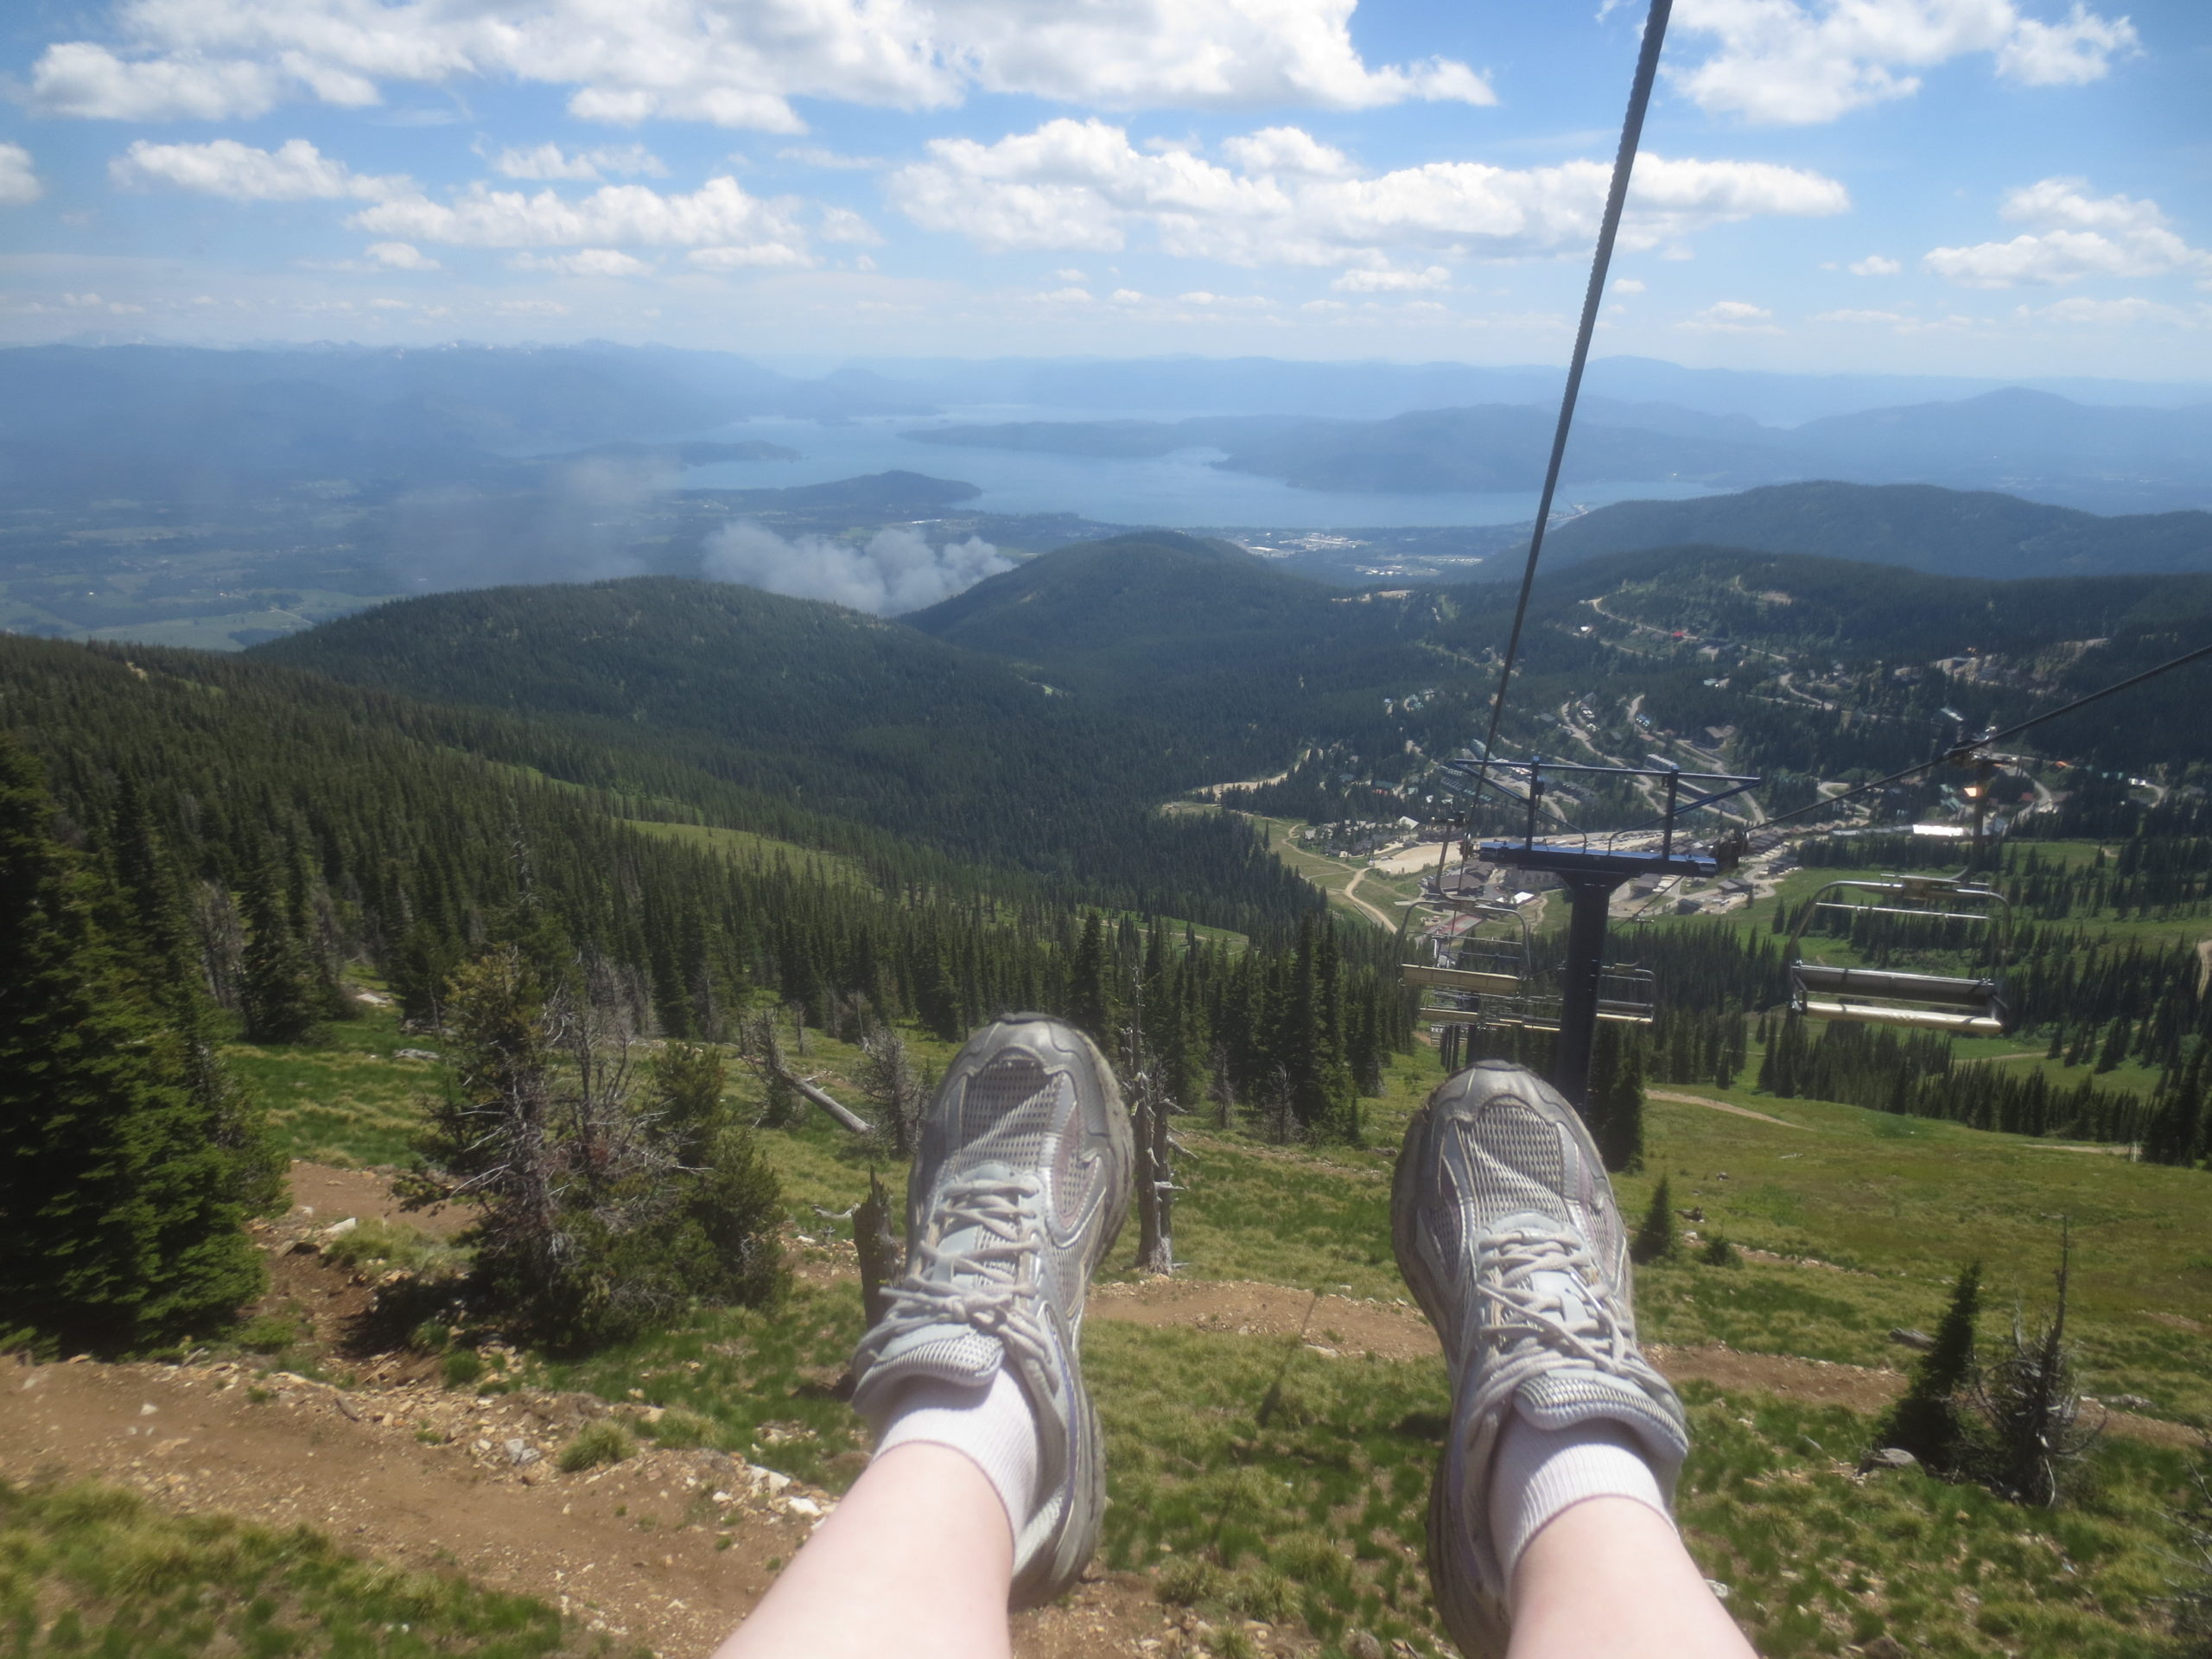 riding down a chairlift in summer